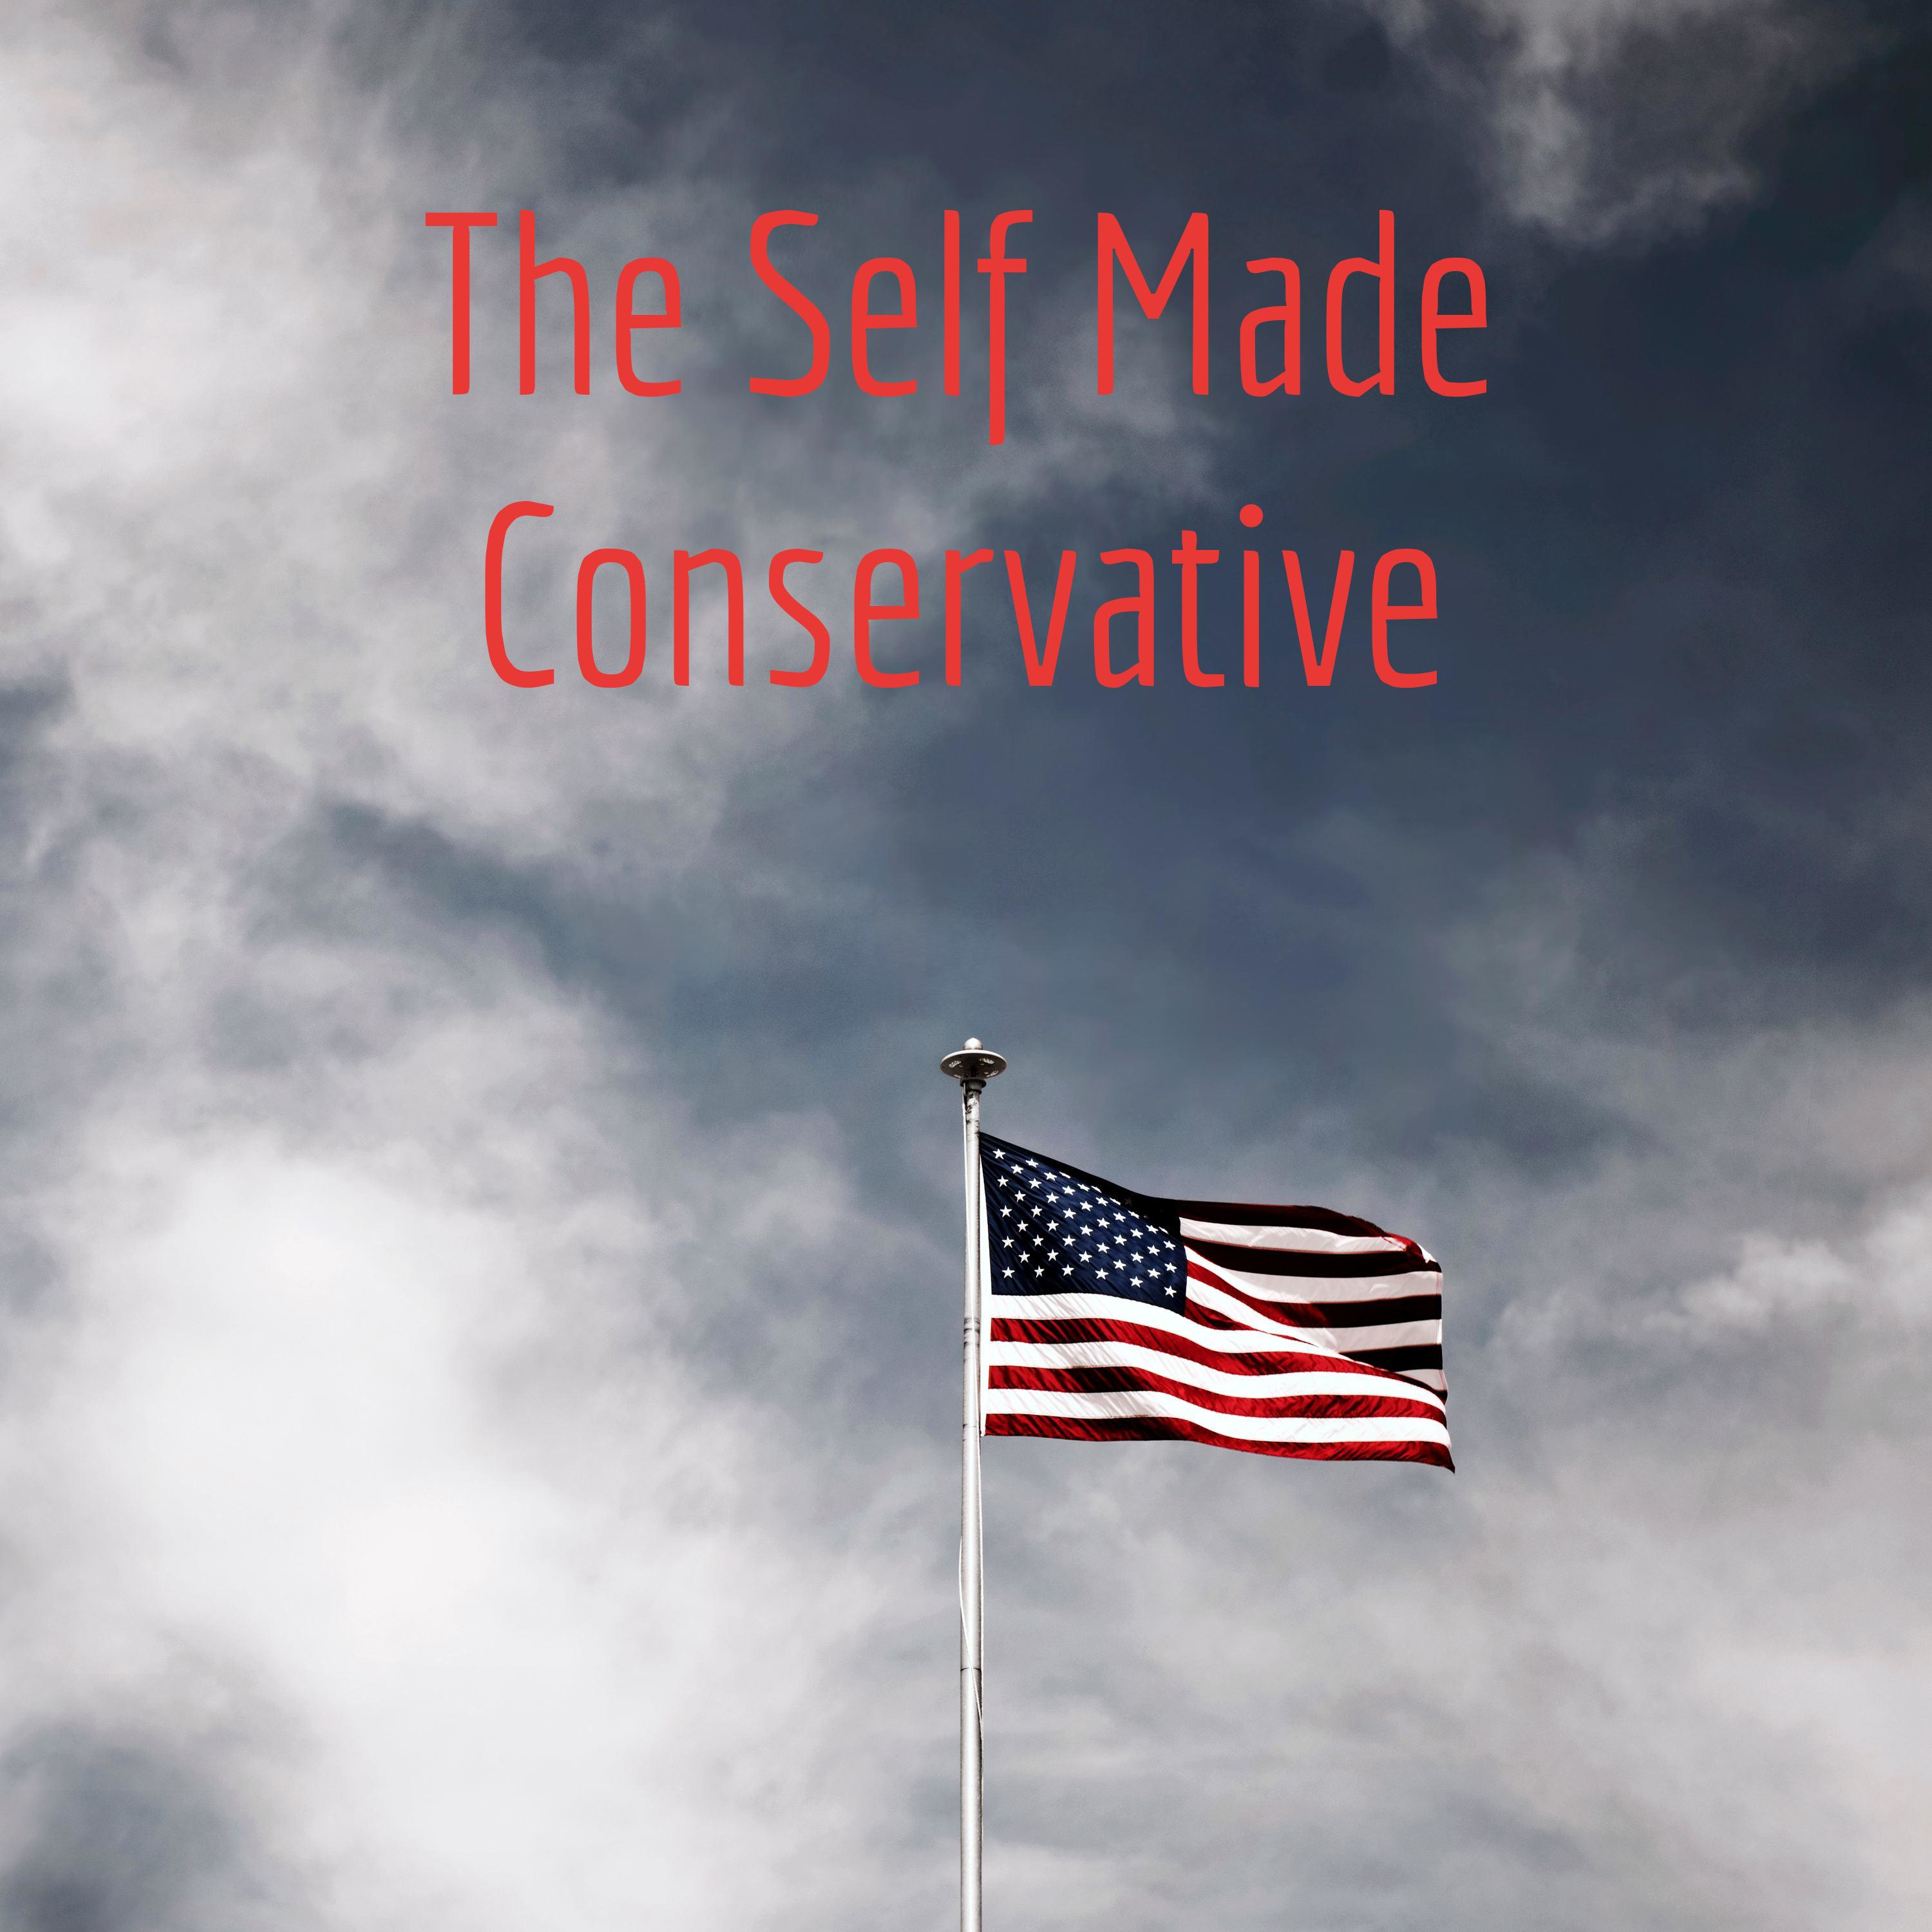 The Self Made Conservative